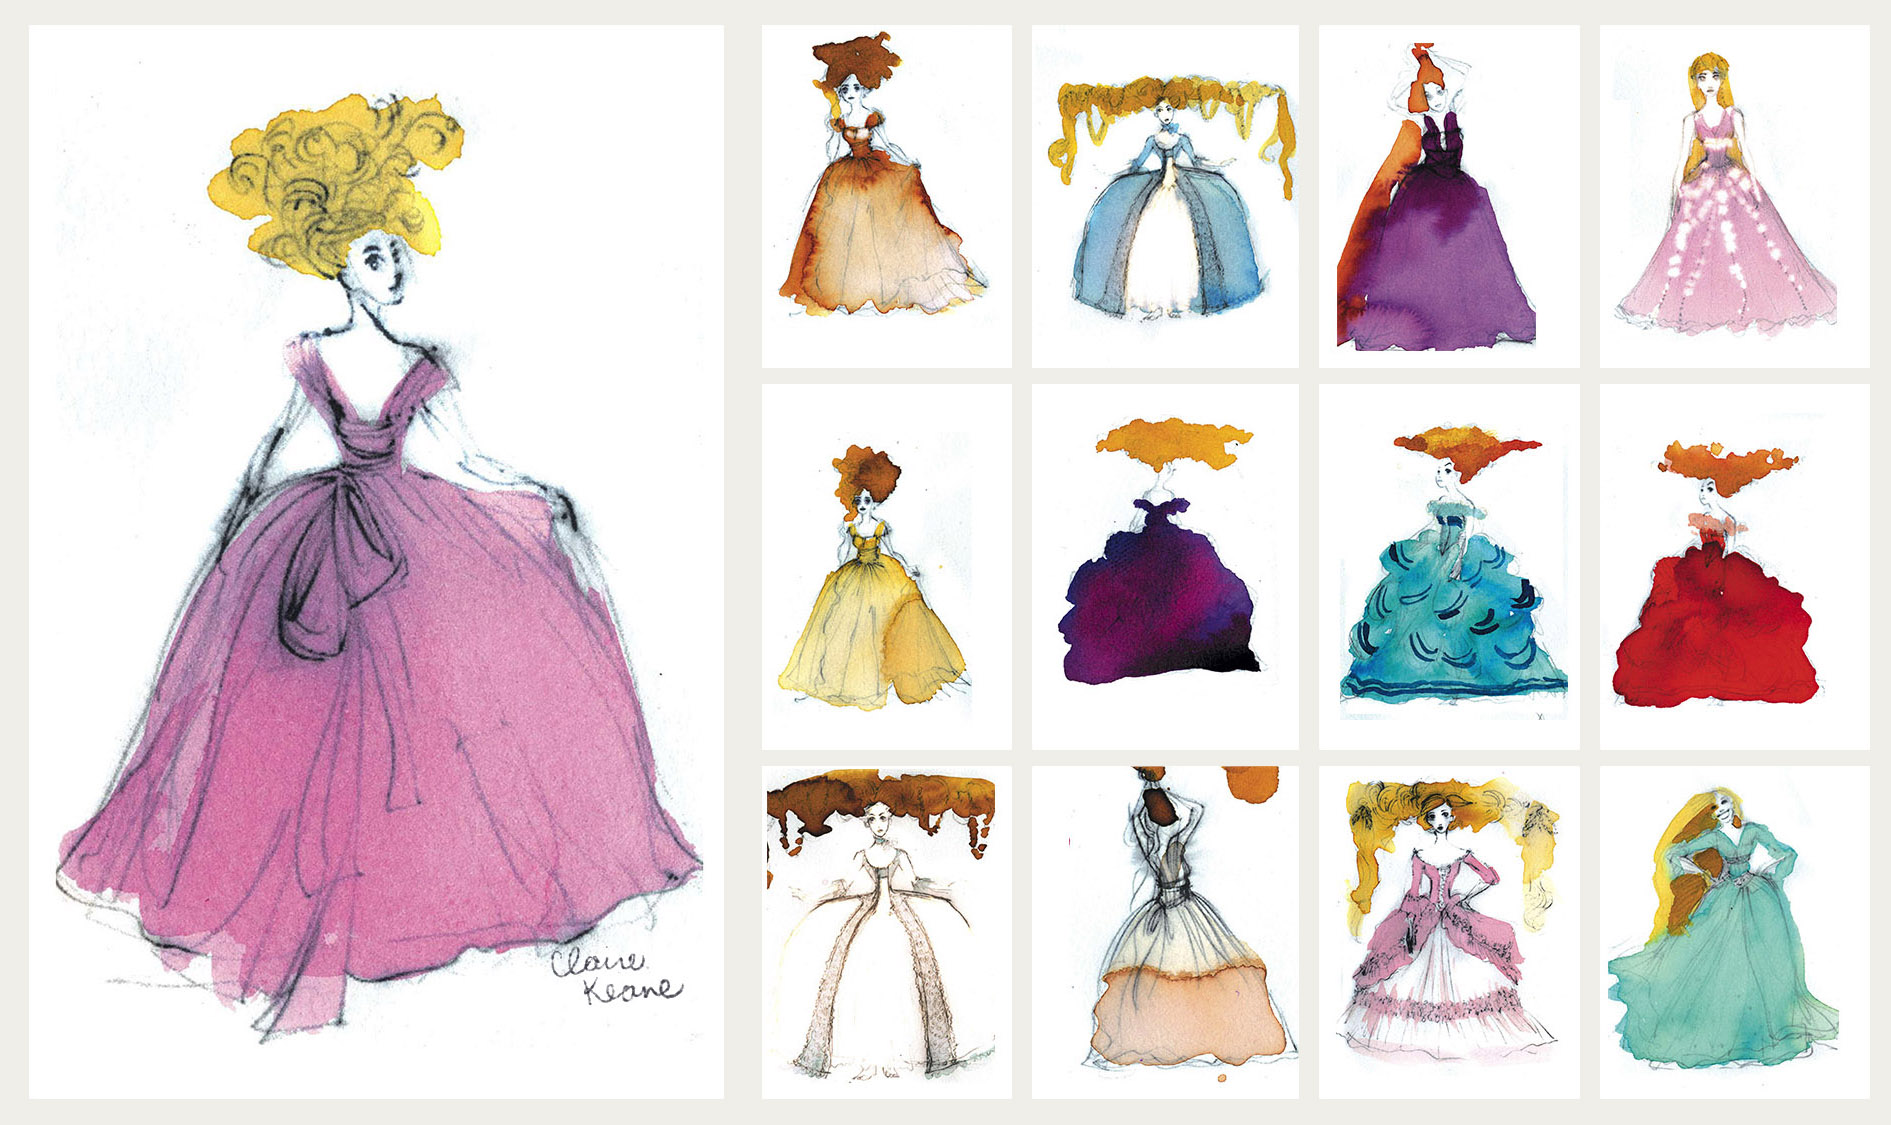 OVER-THE-TOP FAIRYTALE COSTUME DESIGN // VISUAL DEVELOPMENT FOR TANGLED / RAPUNZEL UNBRAIDED